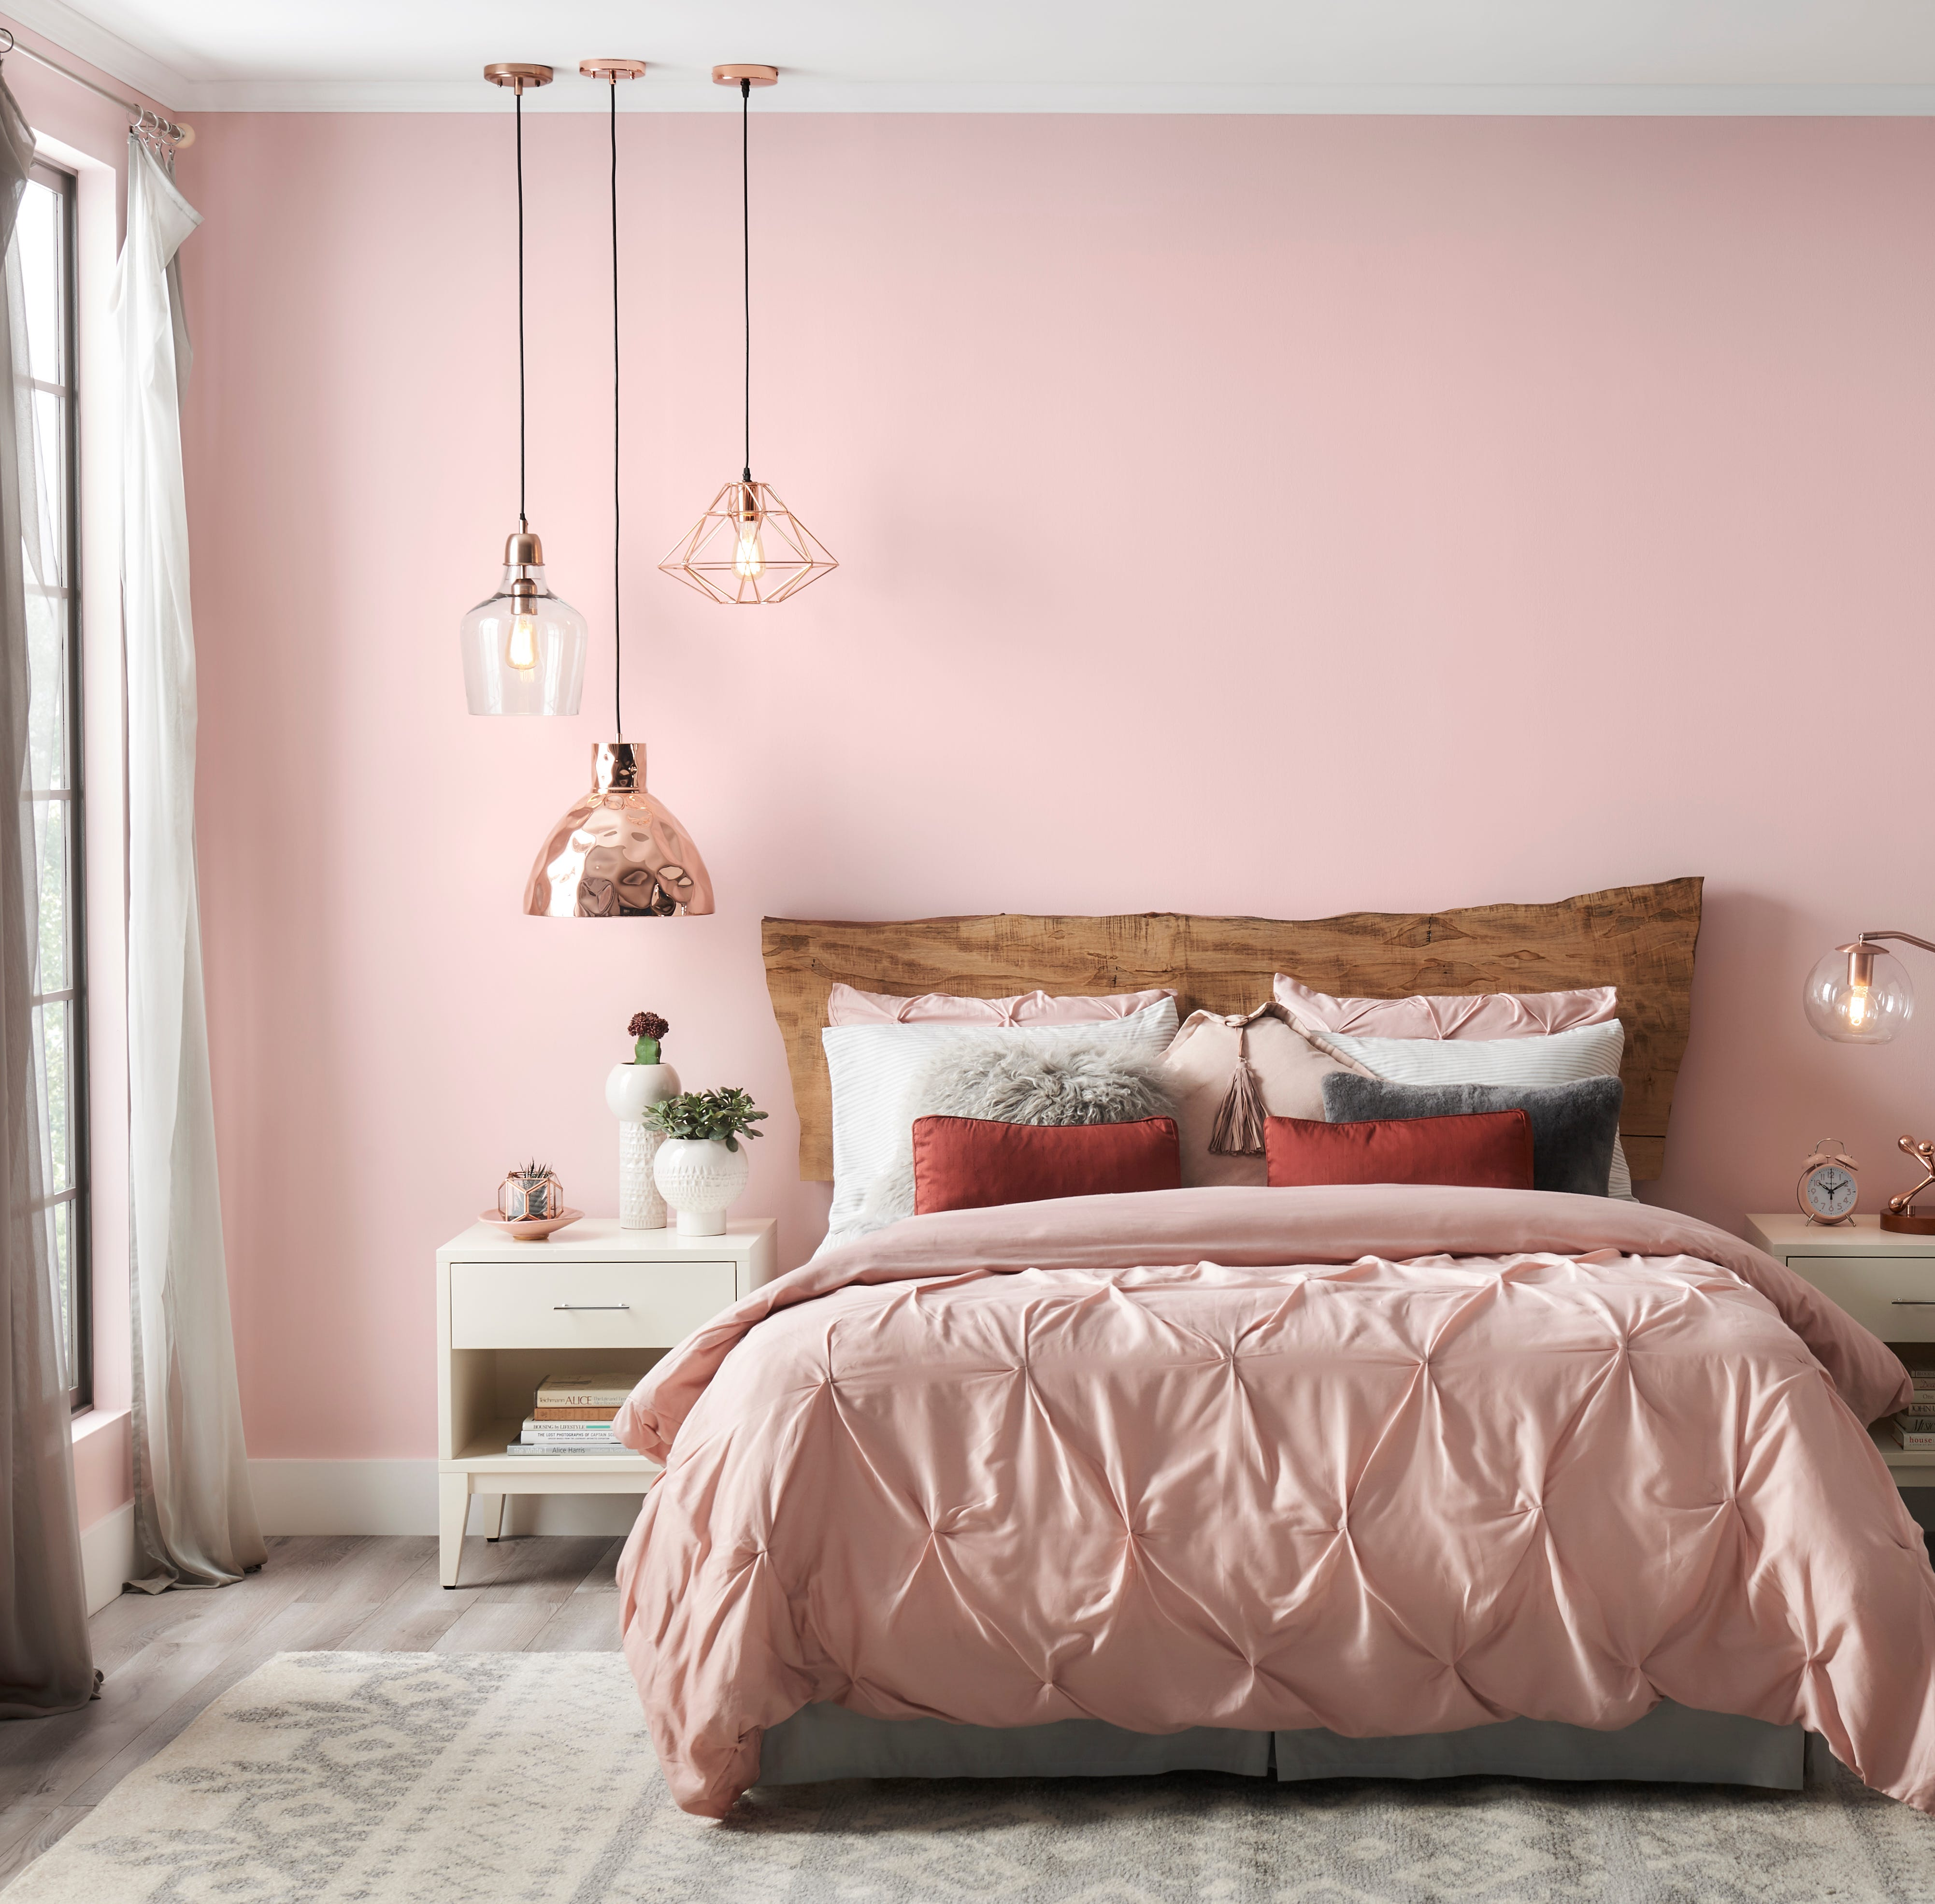 Pretty in pink home decor returns